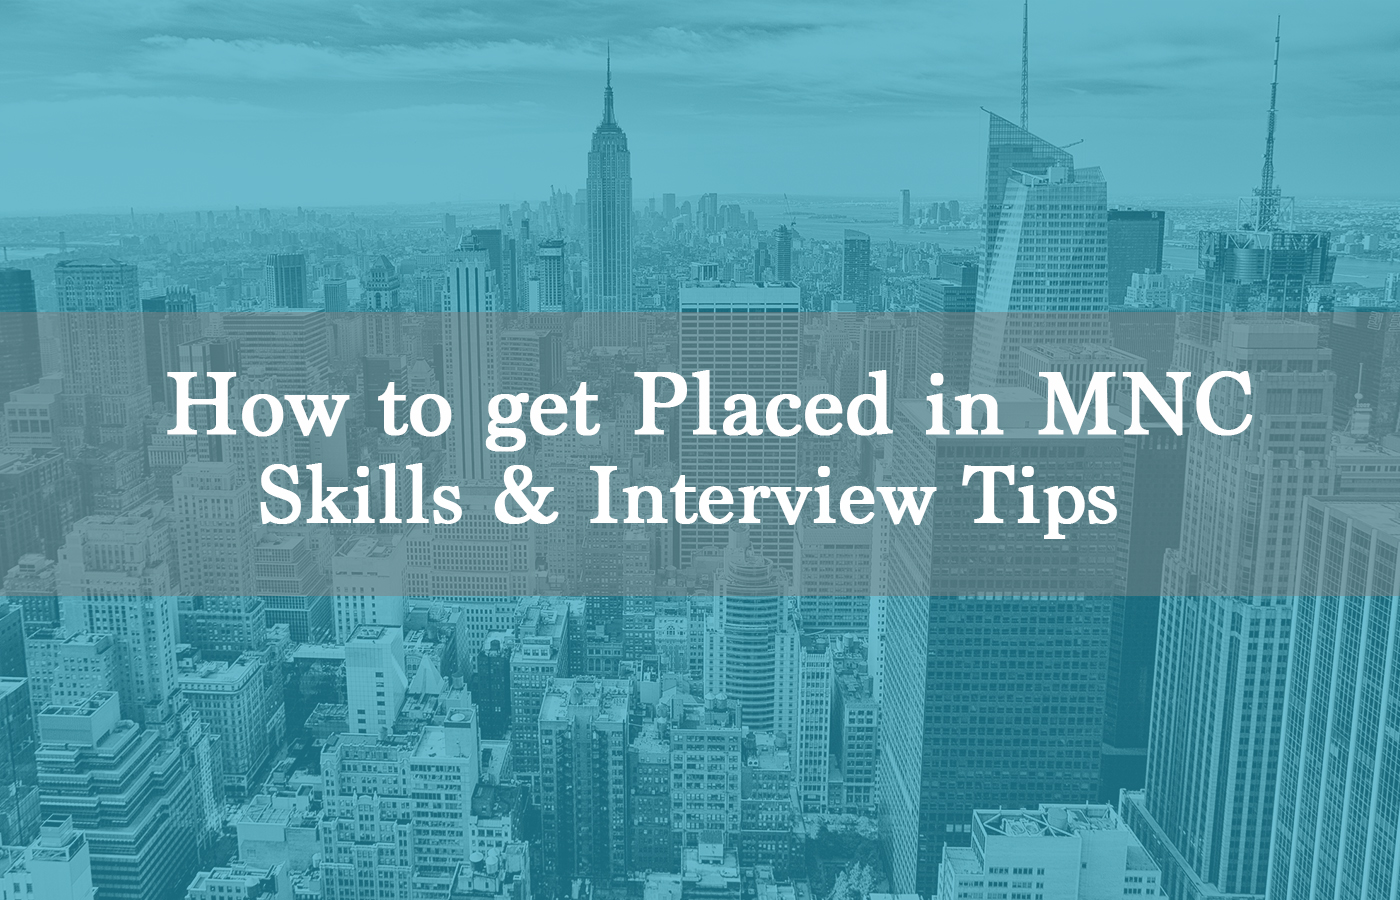 How to get placed in MNCs - General Guidelines